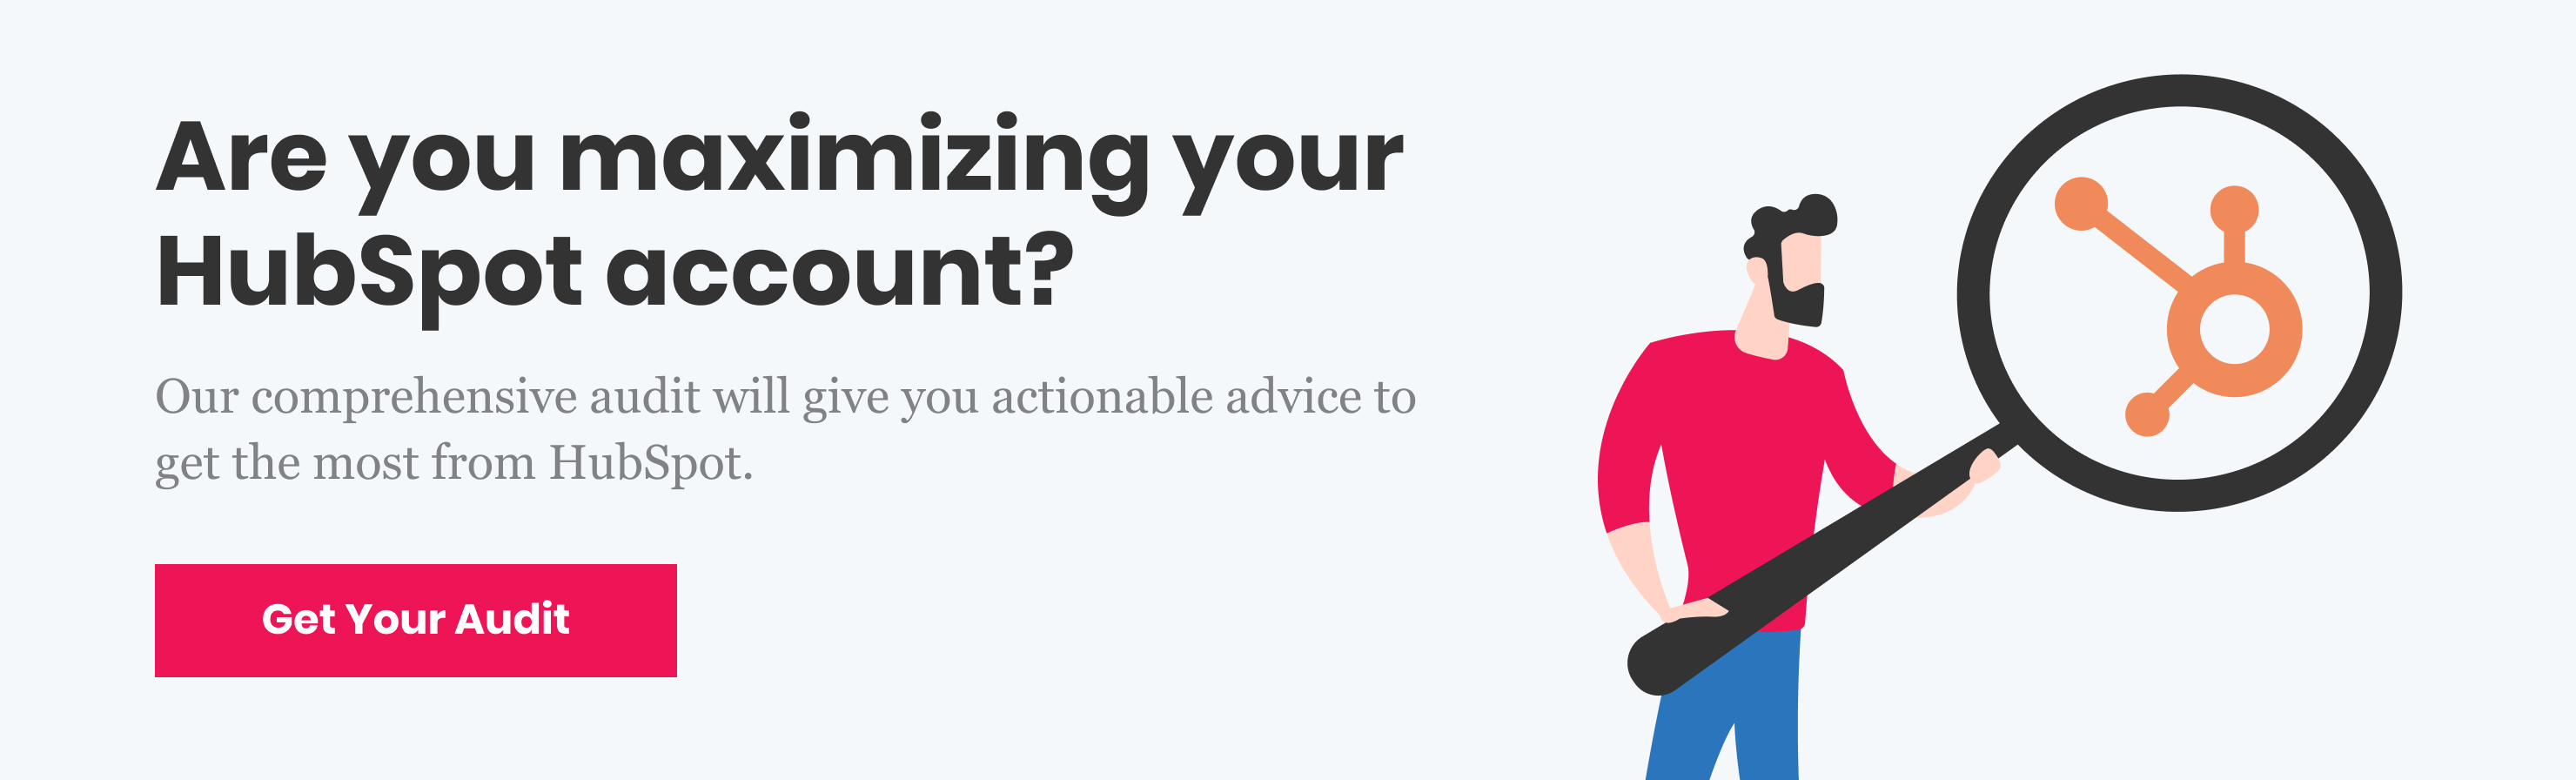 Are you maximizing your HubSpot account? Get a comprehensive audit